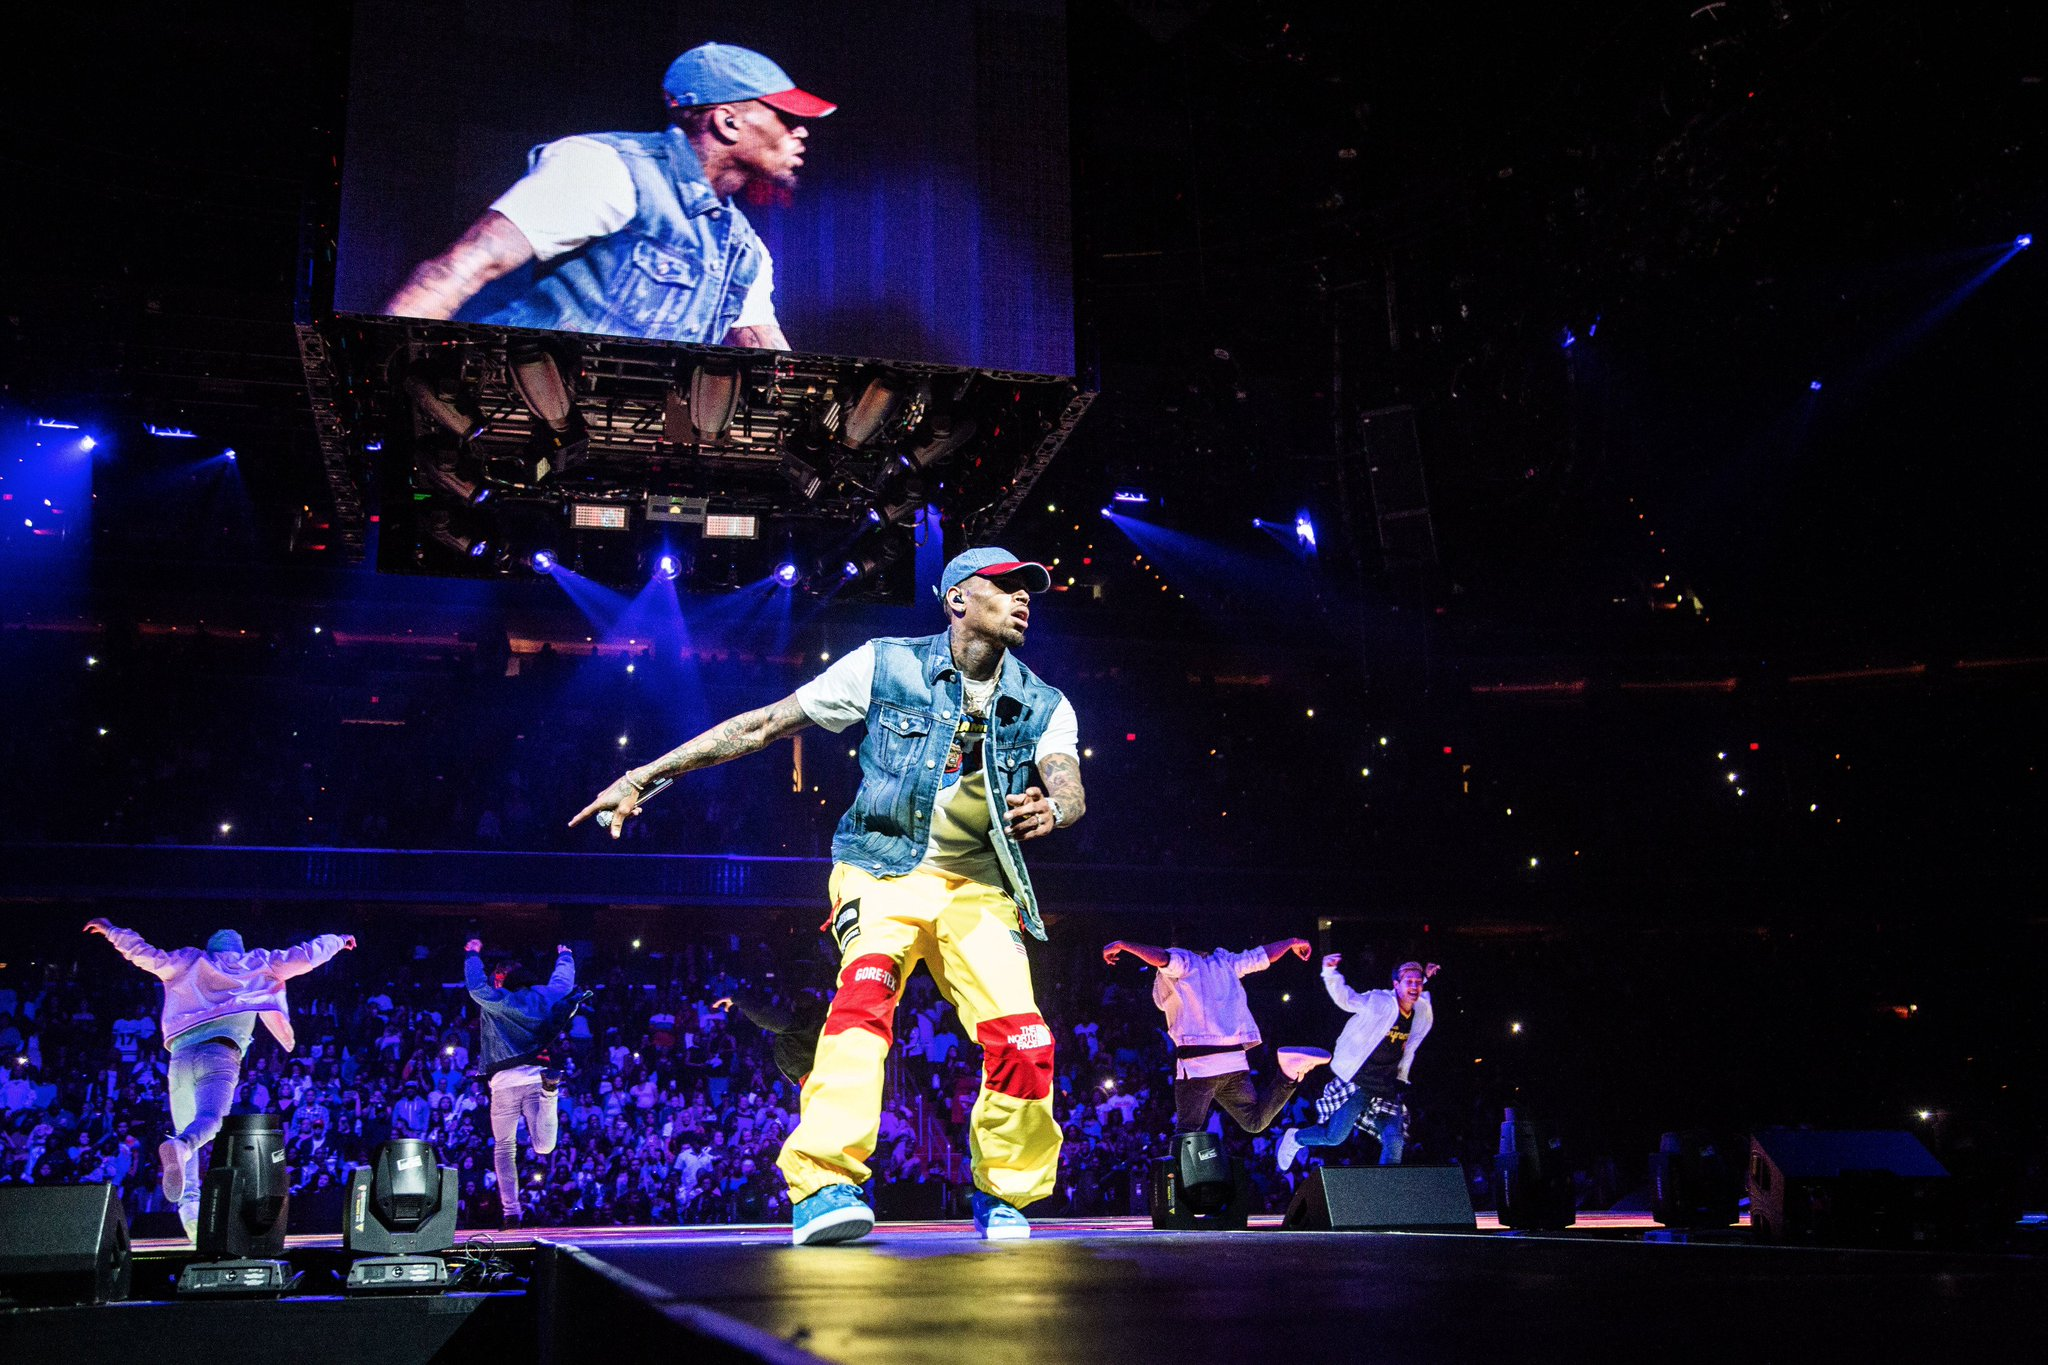 NEW YORK TONIGHT!!! #PARTYTOUR https://t.co/PqrTO85ZVW https://t.co/hjtTkUS0n6